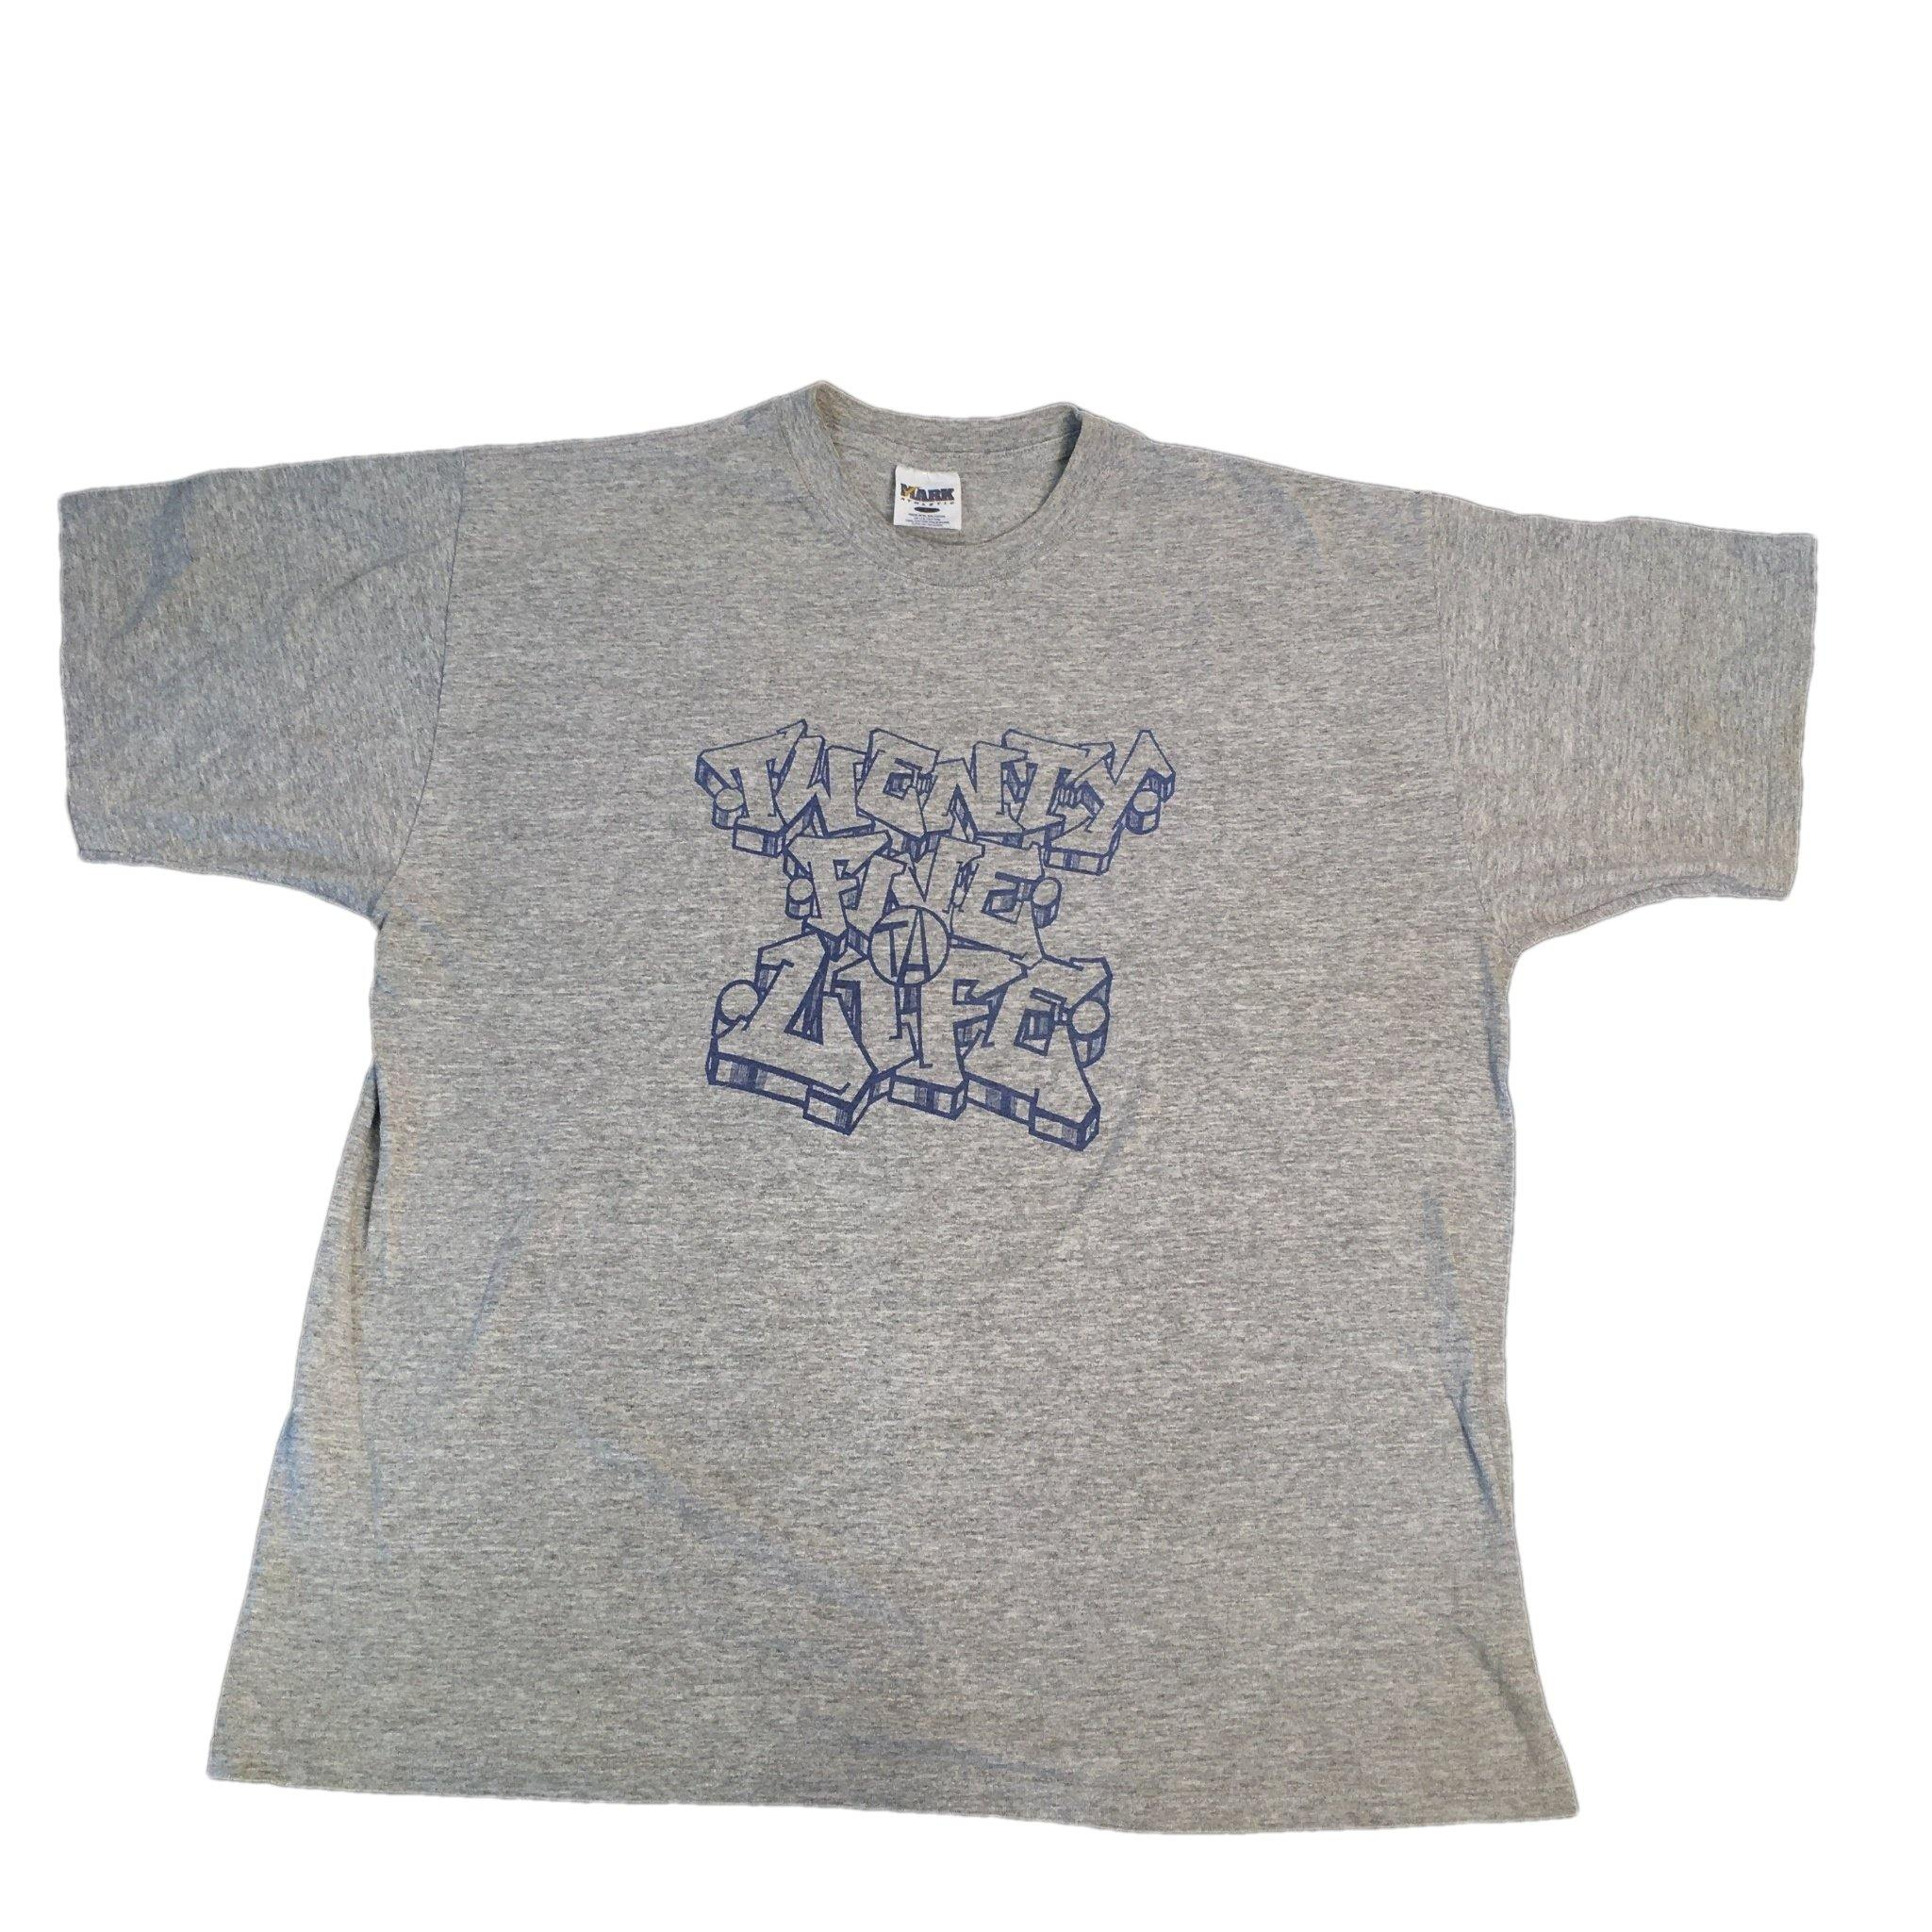 "Vintage 25 Ta Life ""Strength Through Unity"" T-Shirt"